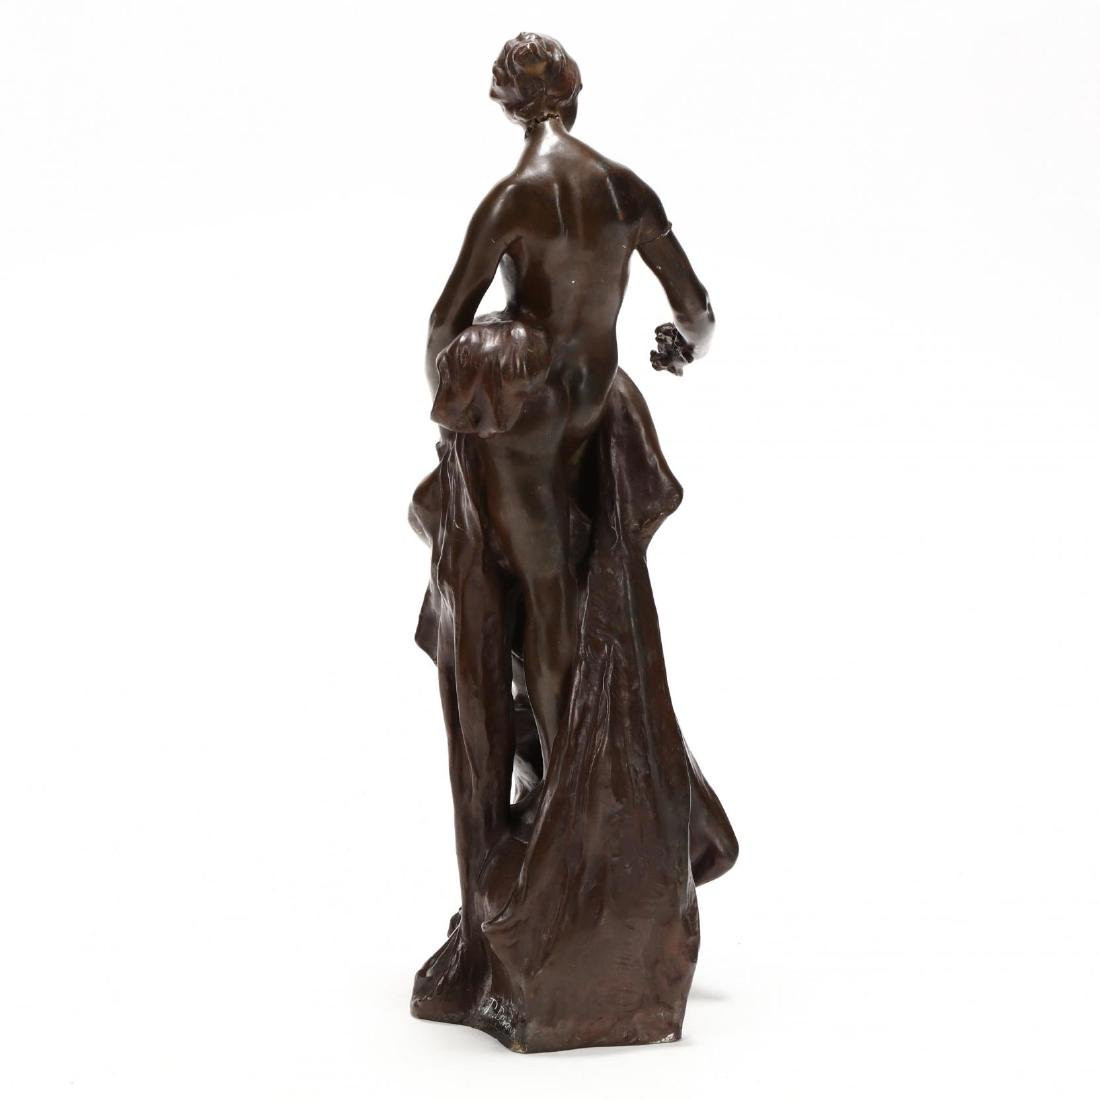 Pierre Devaux (French 1865-1938), Bronze Sculpture of a - 3